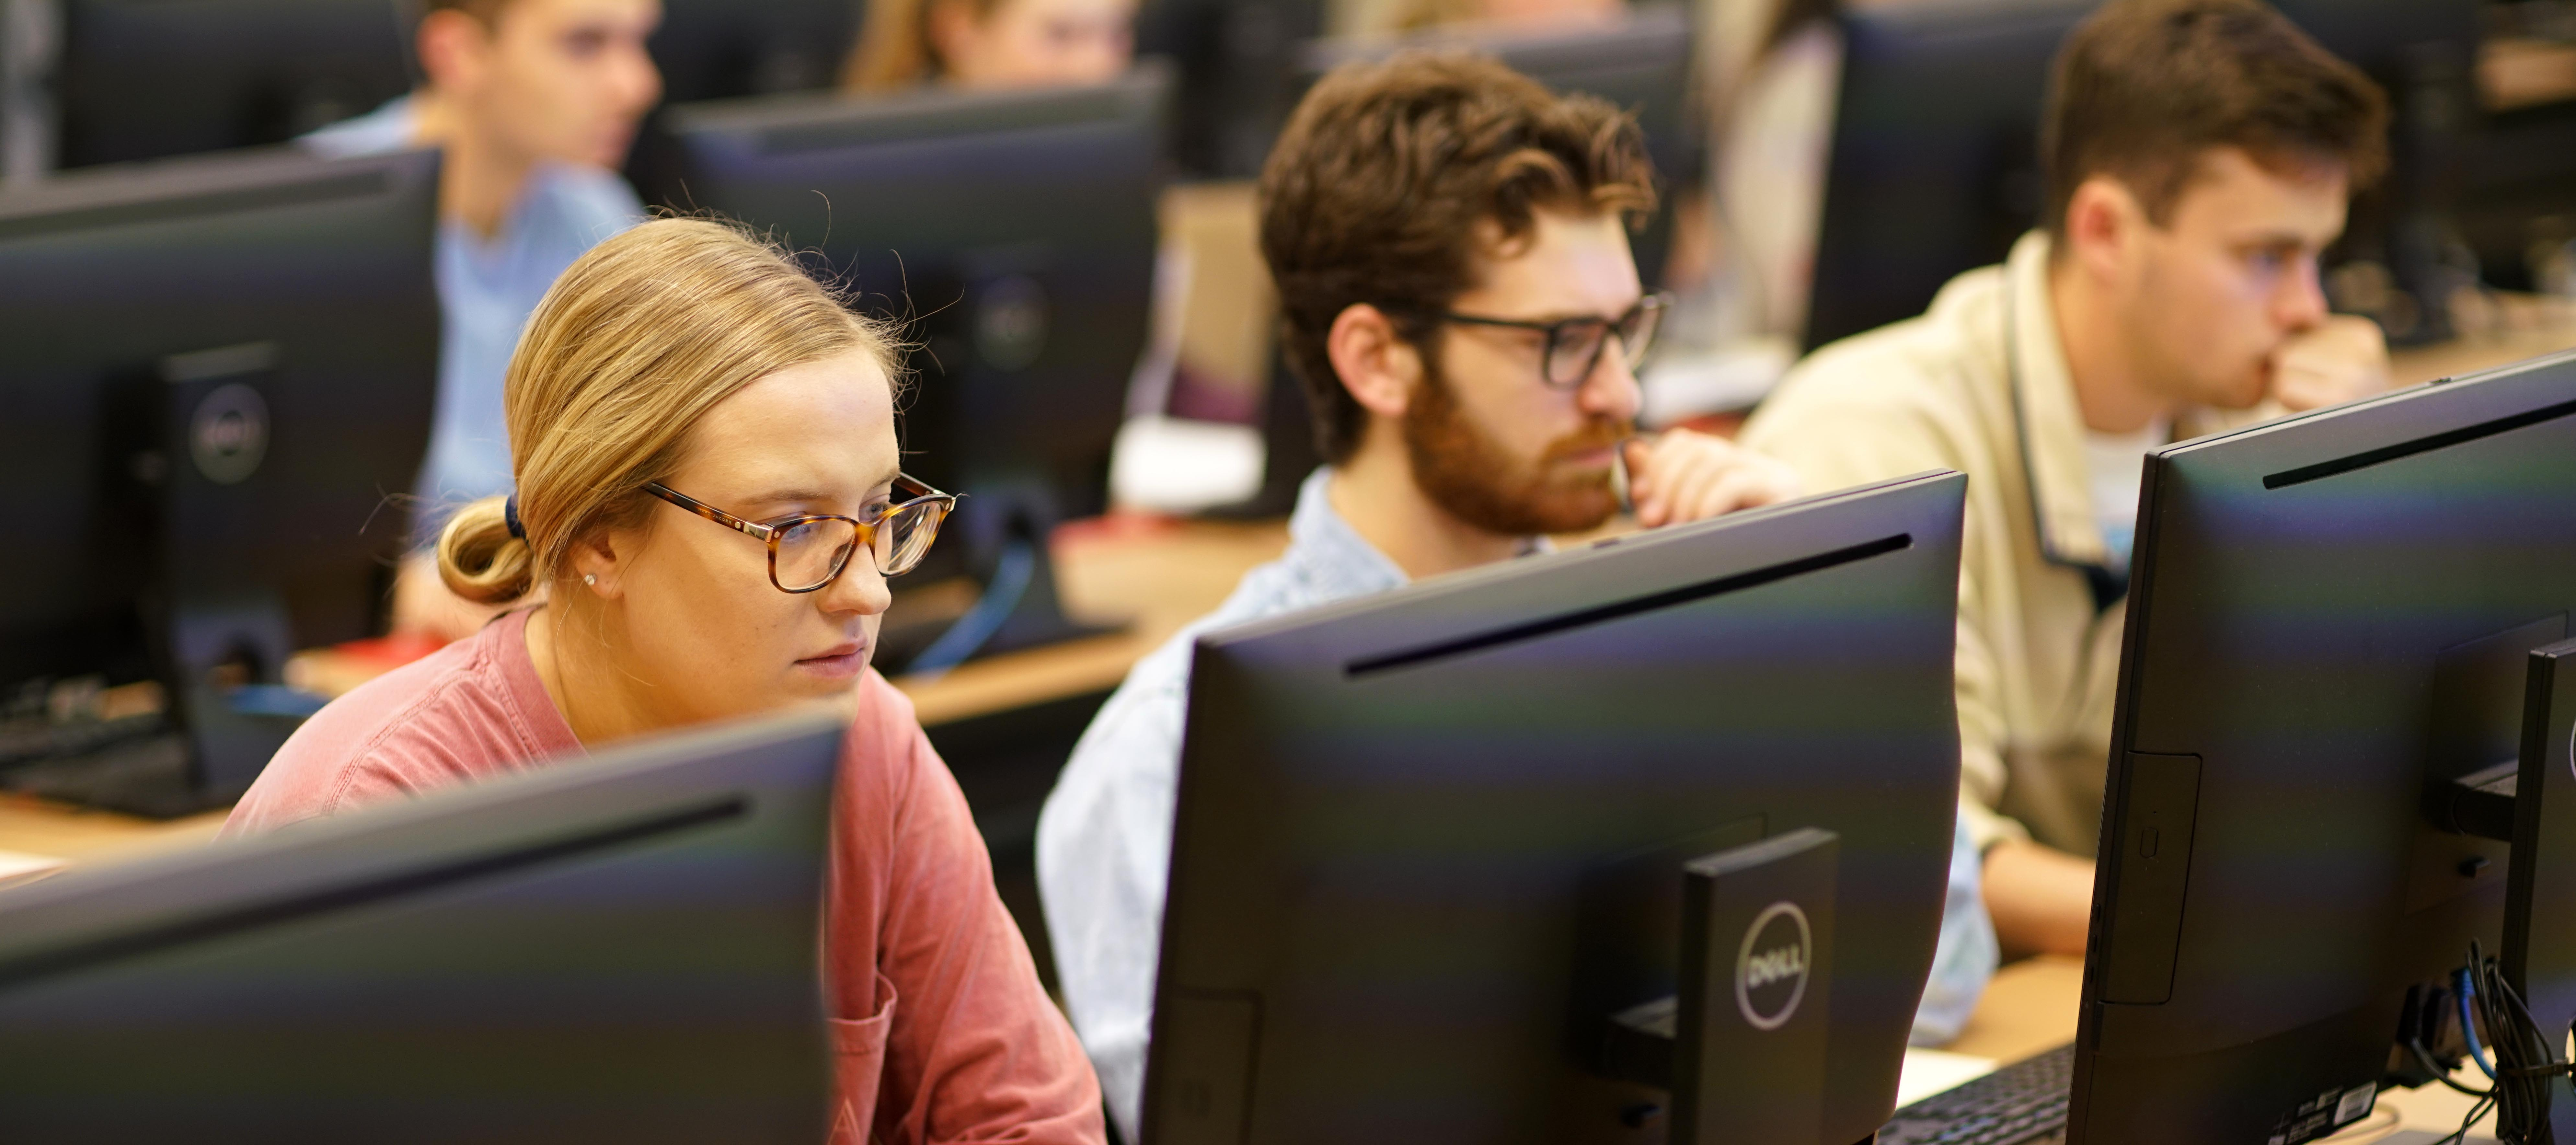 Students in class at computers